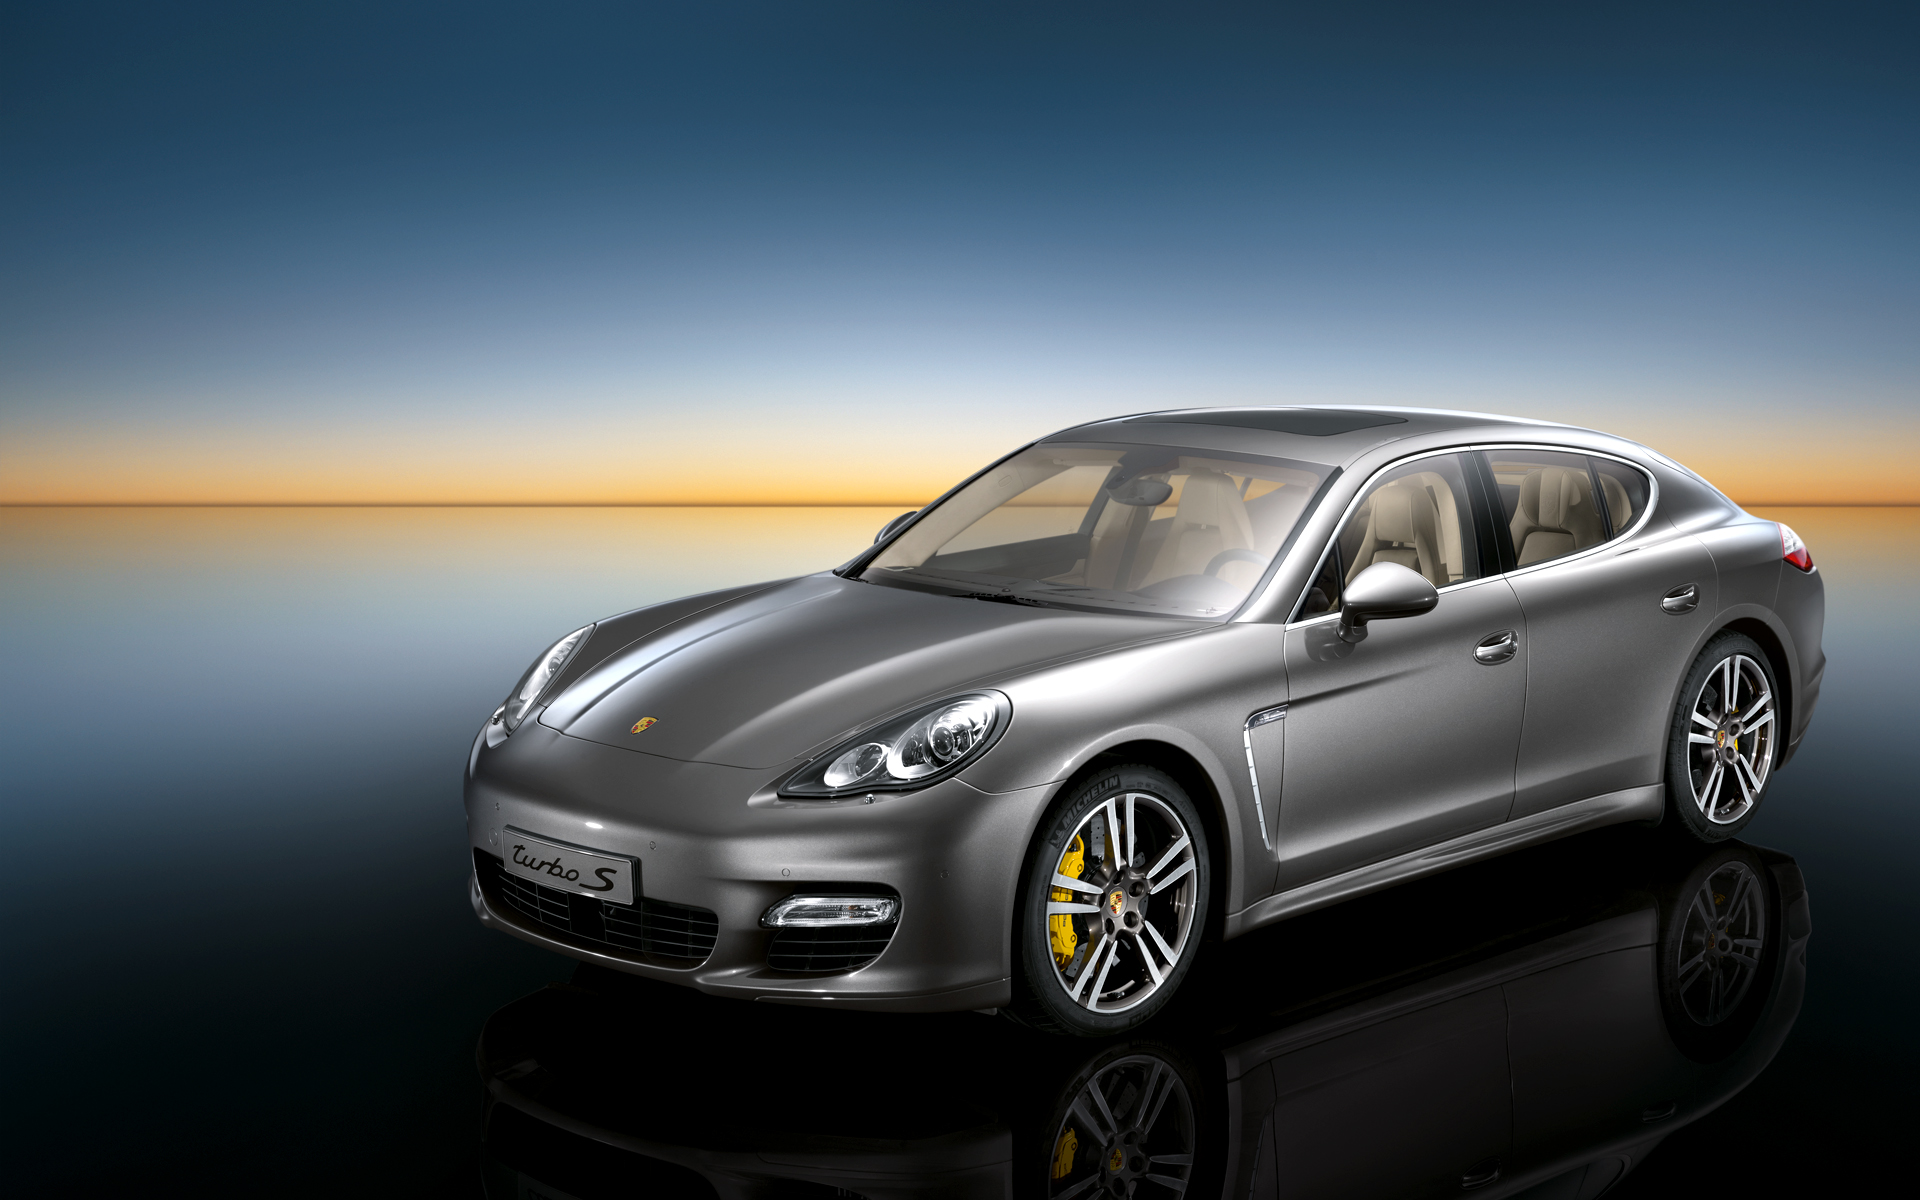 Porsche Panamera S Wallpaper Wallpapers Desktop Wallpapers HD 1920x1200